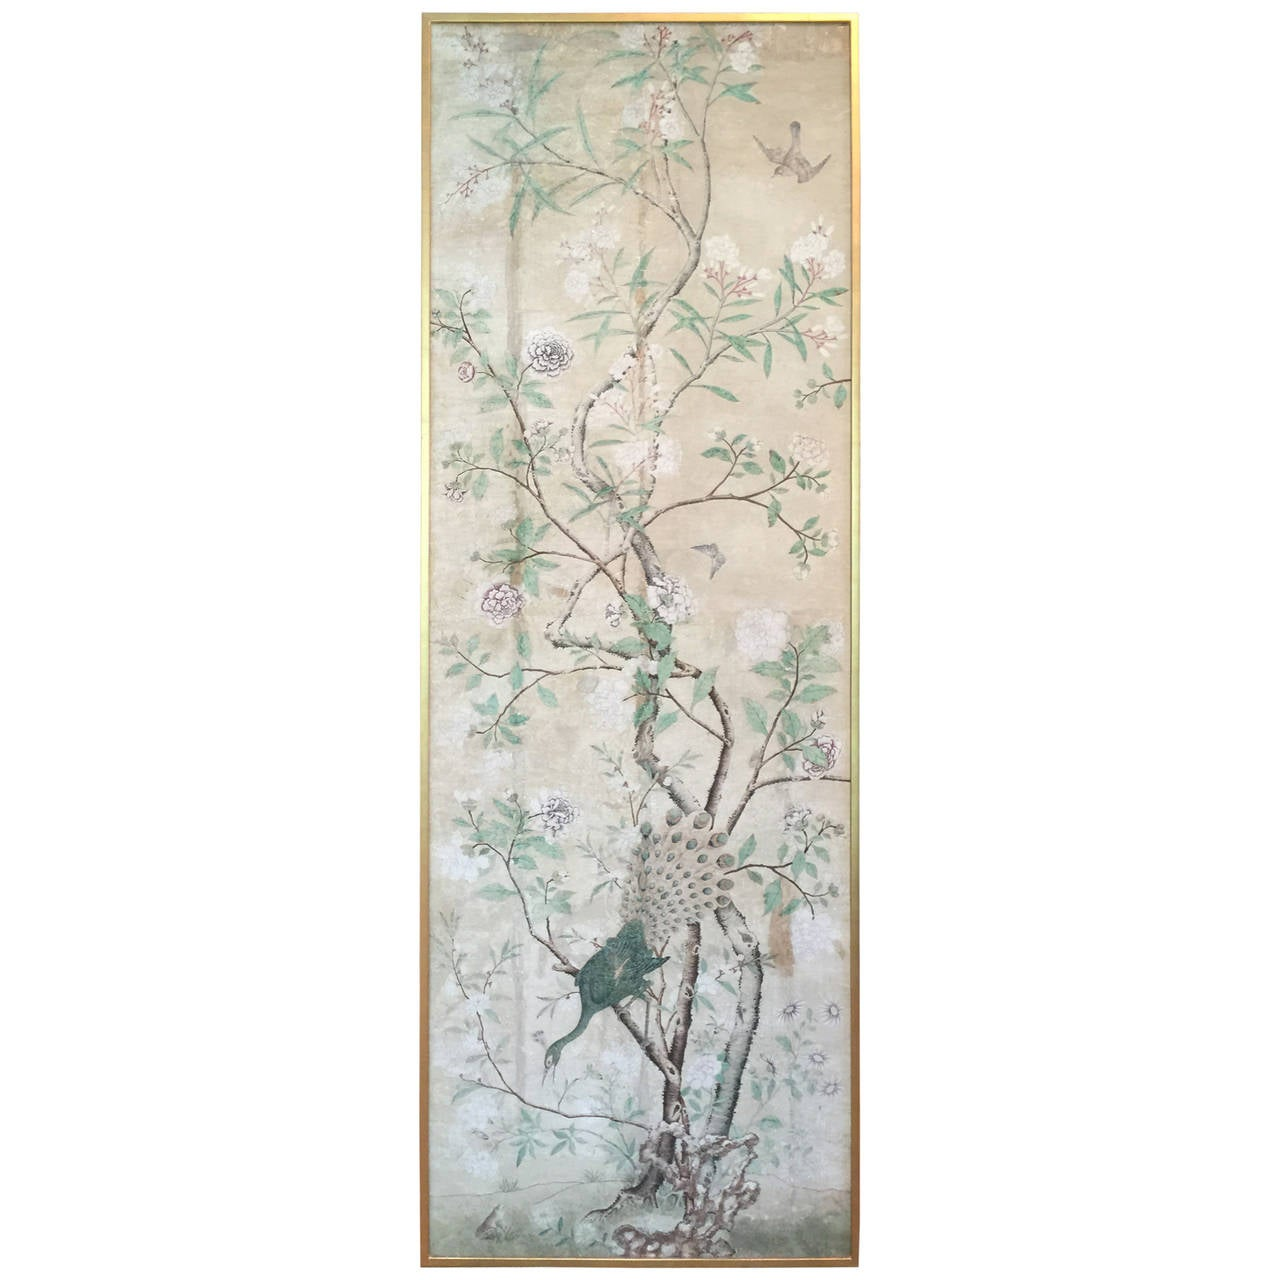 Framed 18th Century Chinese Wallpaper Panel